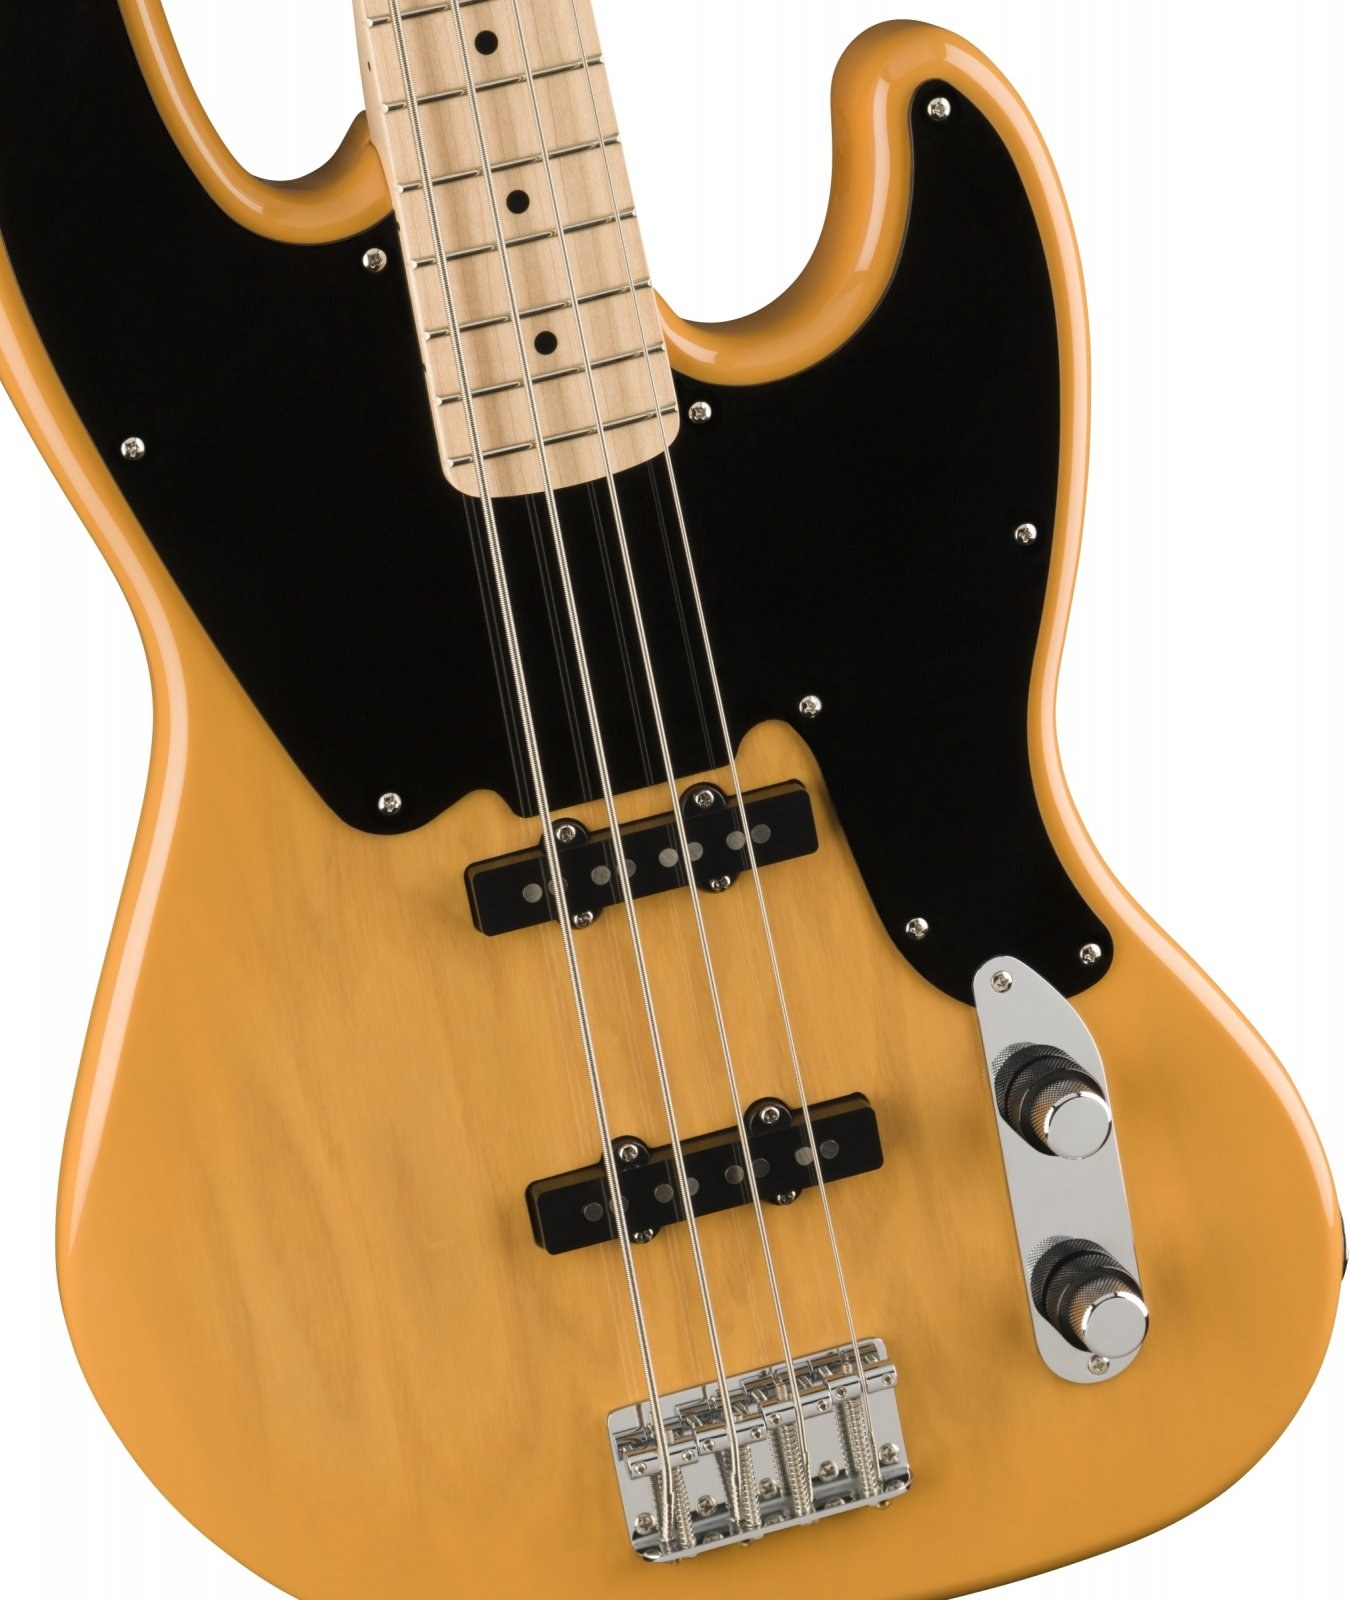 Squier Paranormal Jazz Bass '54 - Butterscotch Blonde (scratch and dent)